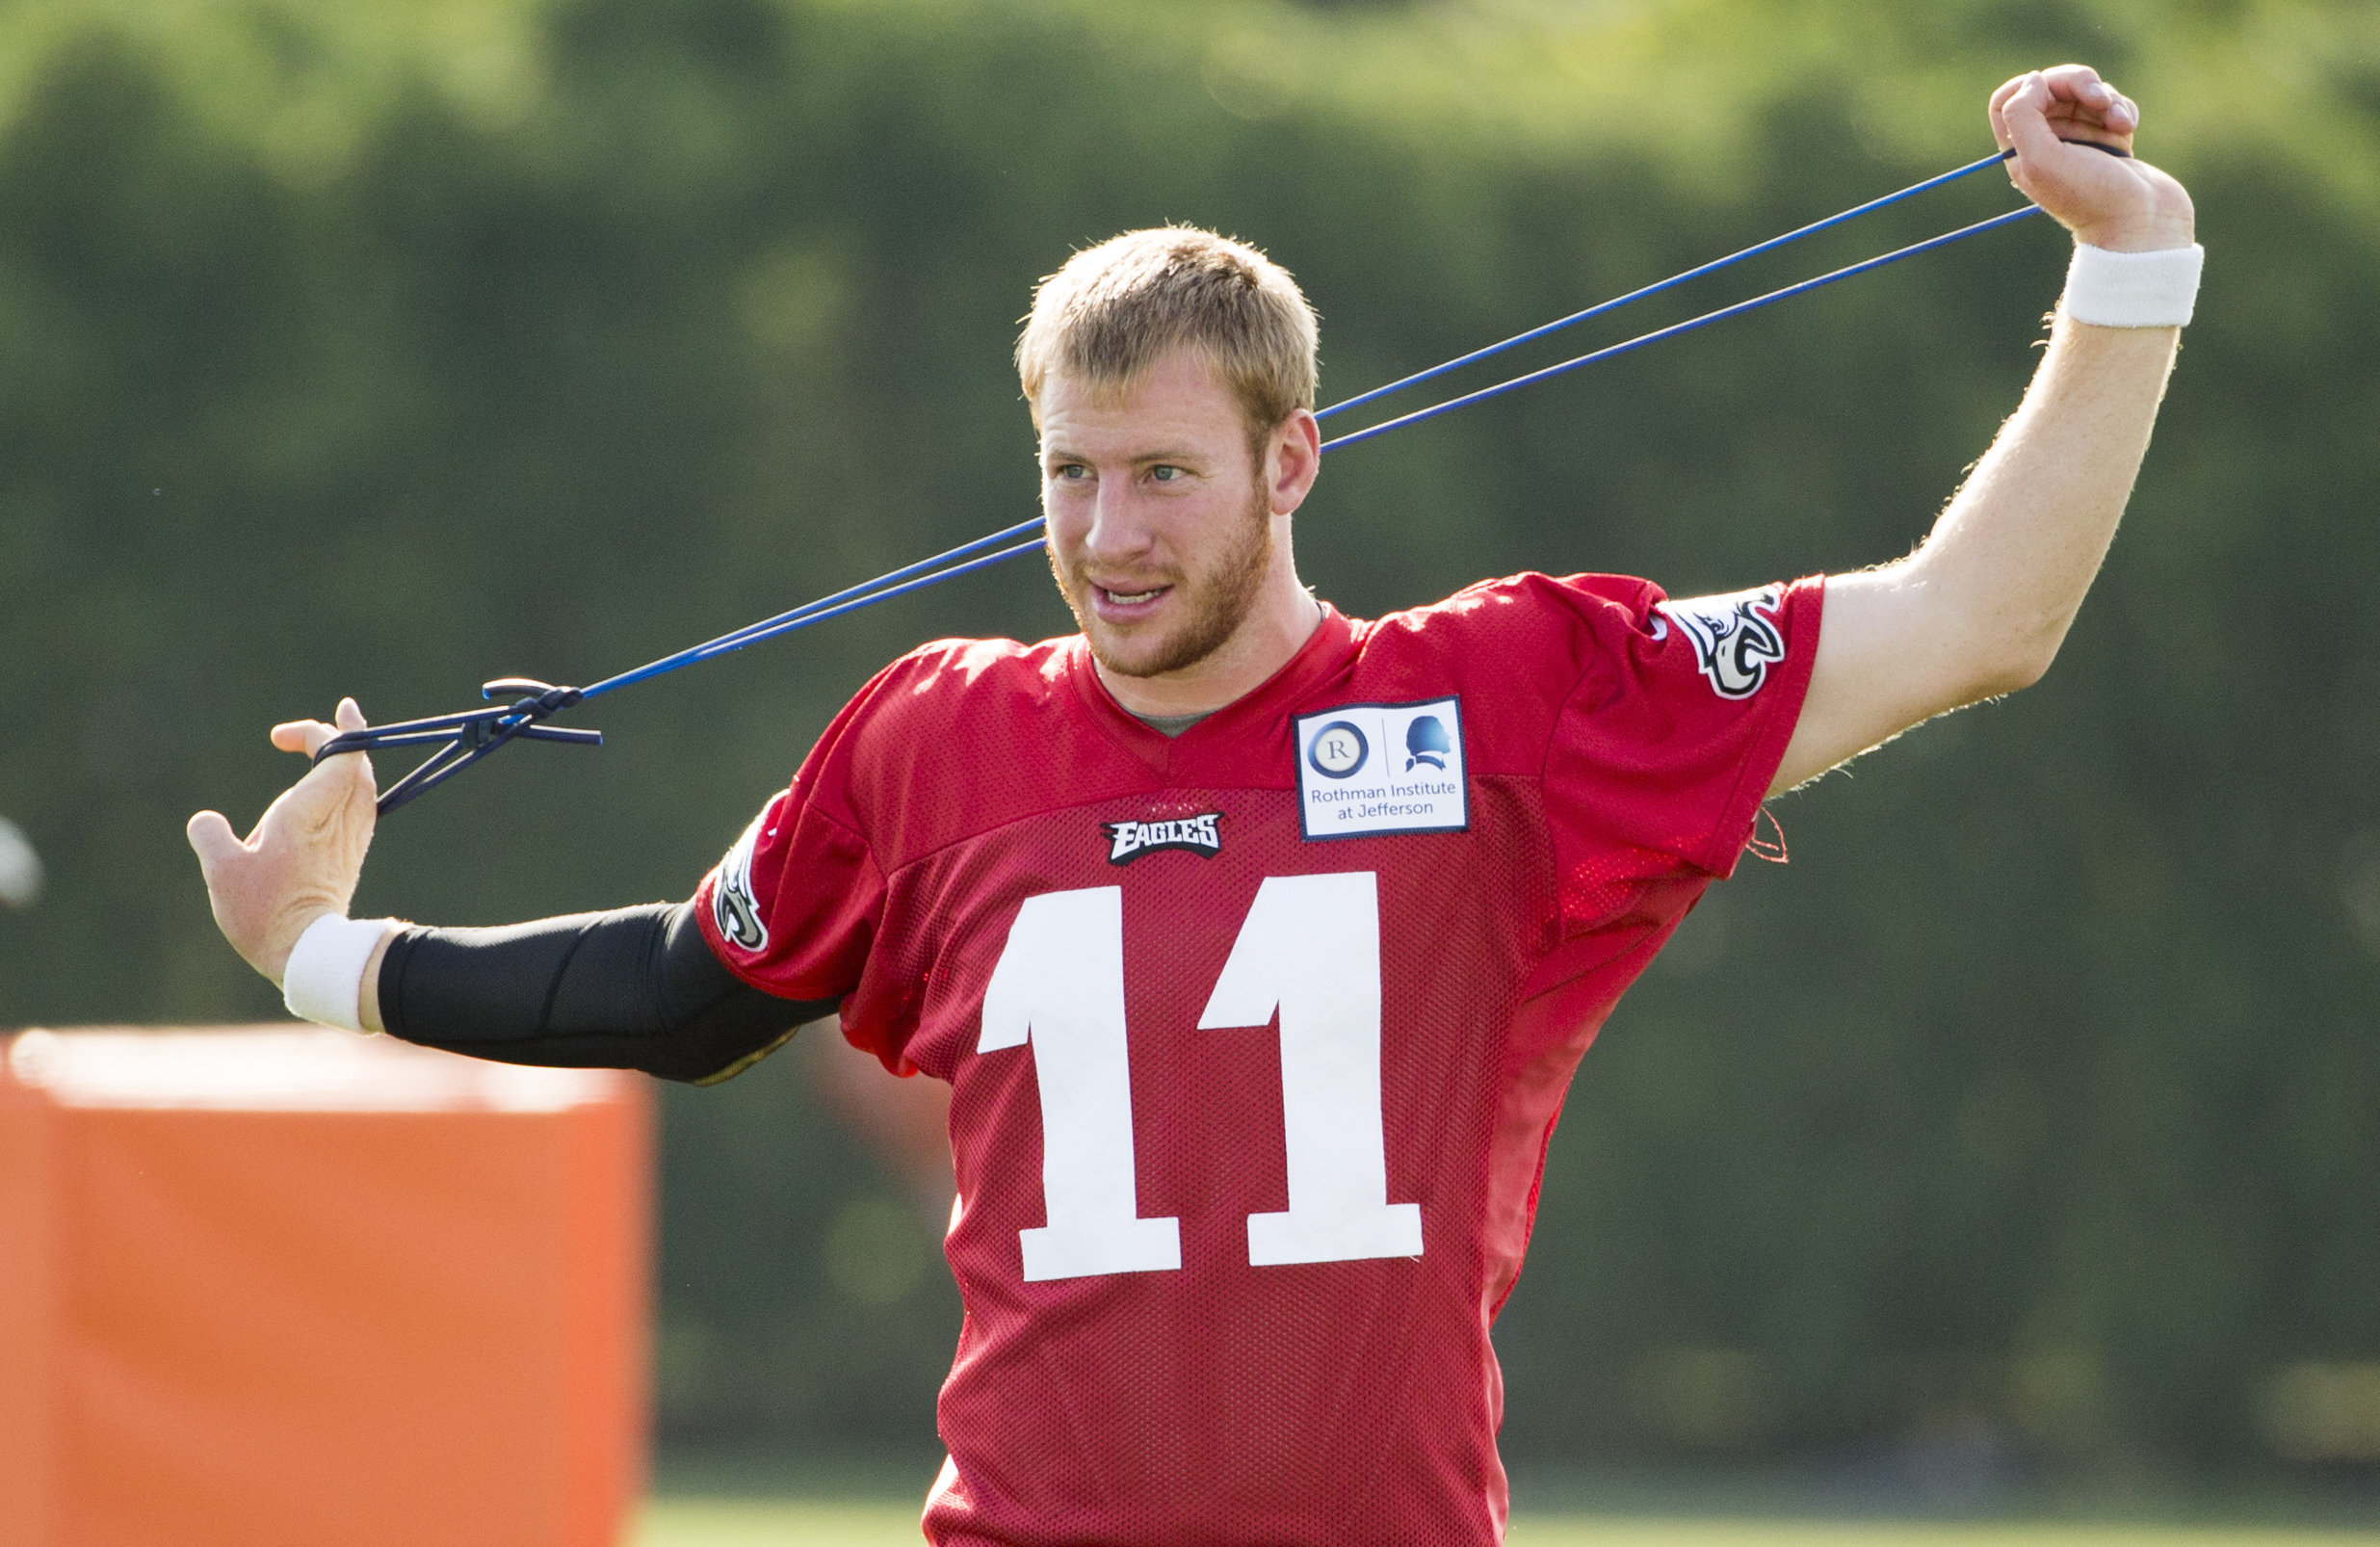 FILE - In this July 26, 2016, file photo, Philadelphia Eagles quarterback Carson Wentz stretches during practice at NFL football training camp, in Philadelphia. The Eagles traded a slew of picks to select Wentz at No. 2 in the draft, but he was slated to